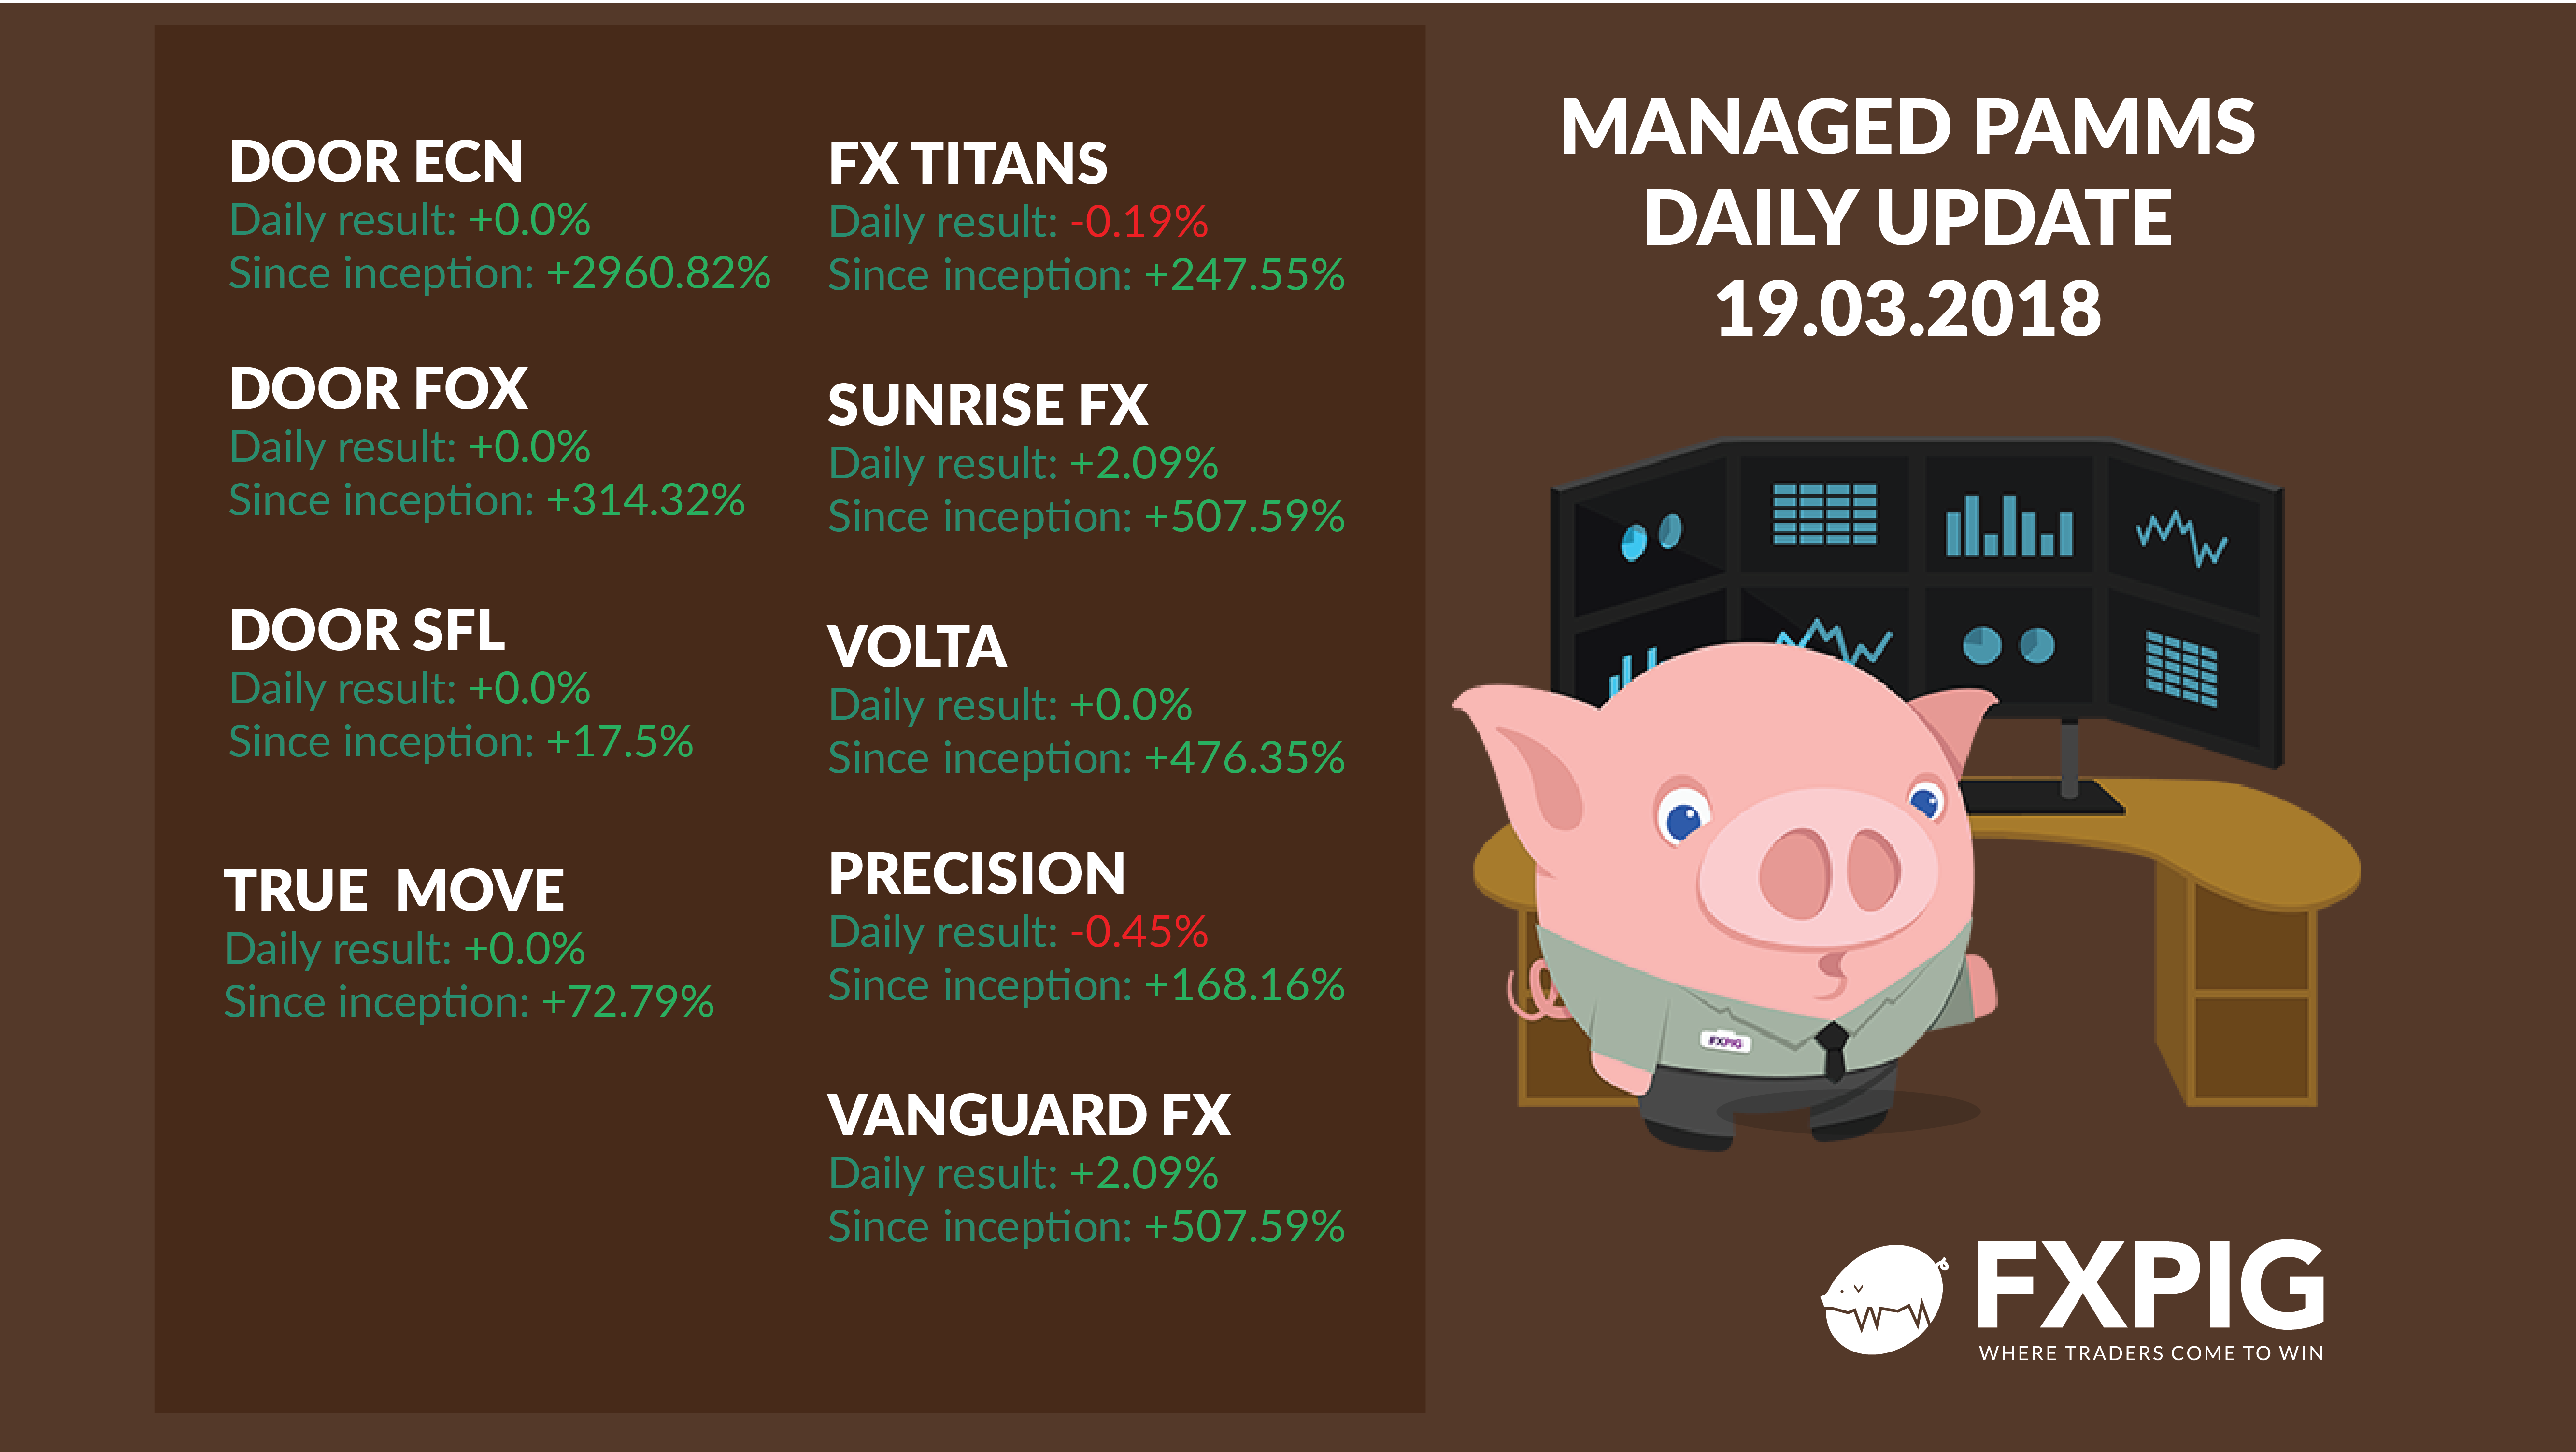 FOREX_Managed-Forex-Accounts-19.03.2018_FXPIG